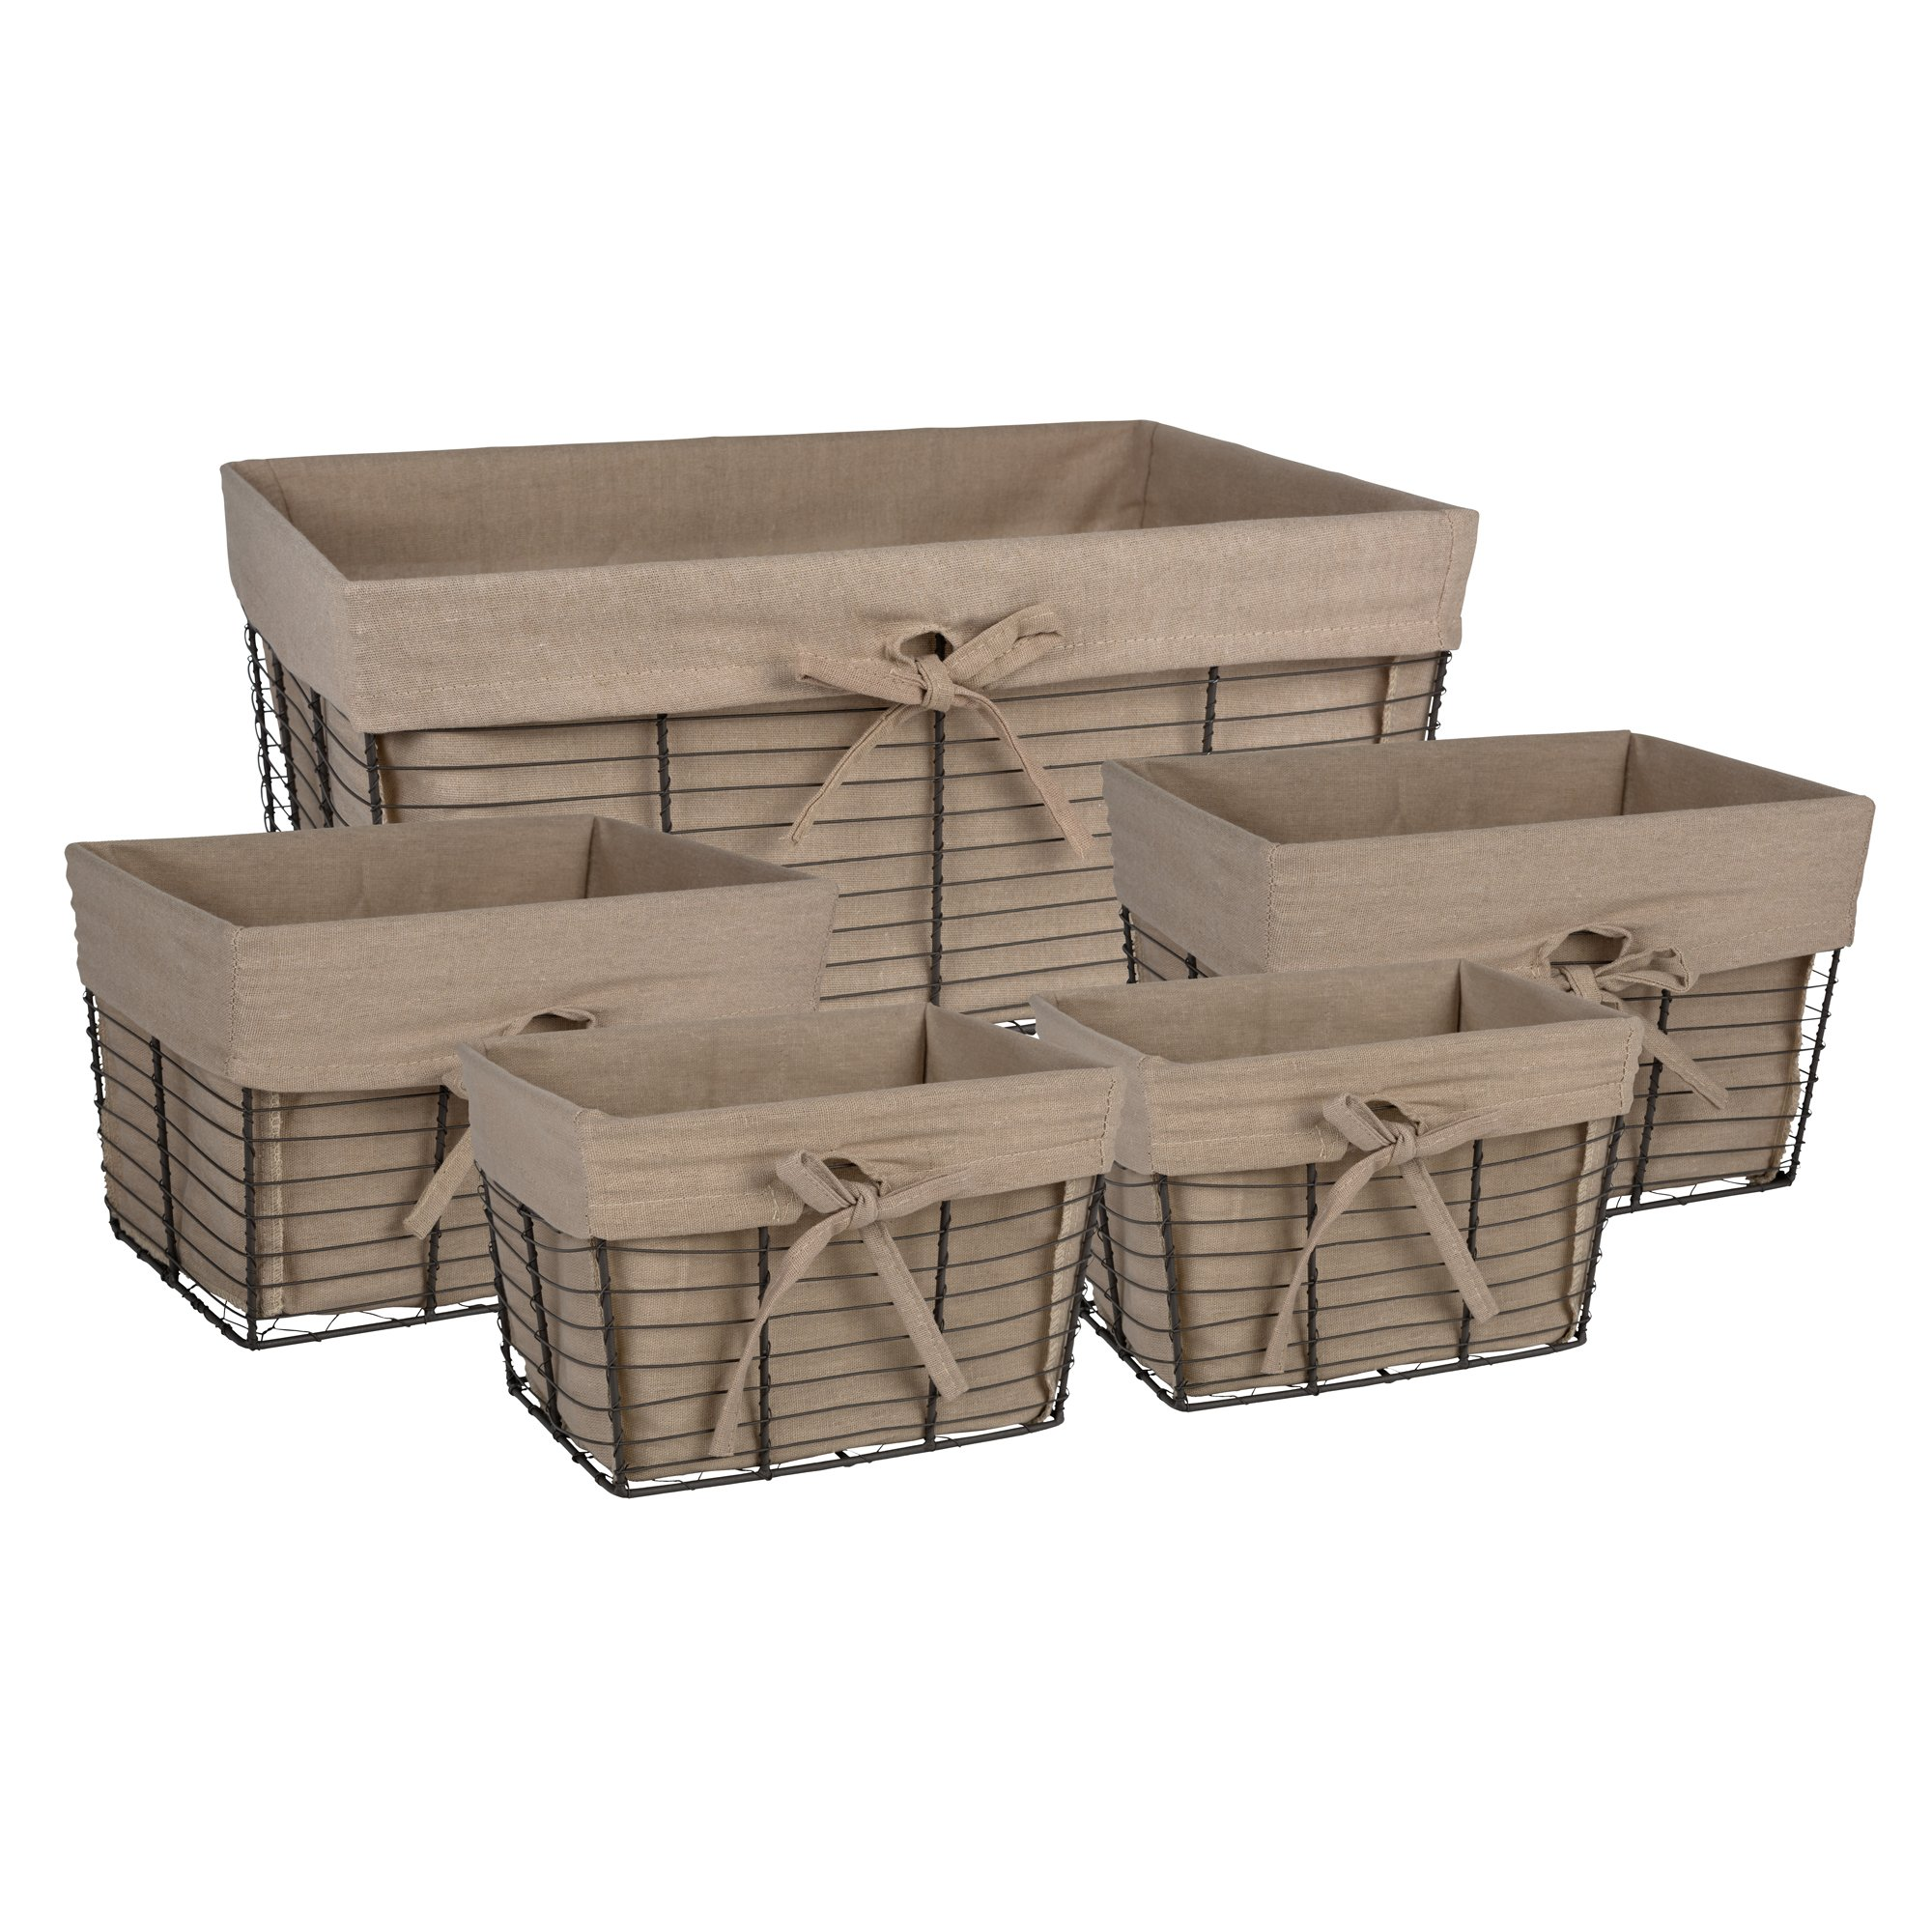 DII Home Traditions Vintage Metal Chicken Storage Basket with Removable Liner, Set of 5 Mixed Nesting Sizes, Desert Taupe Fabric with Grey Wire